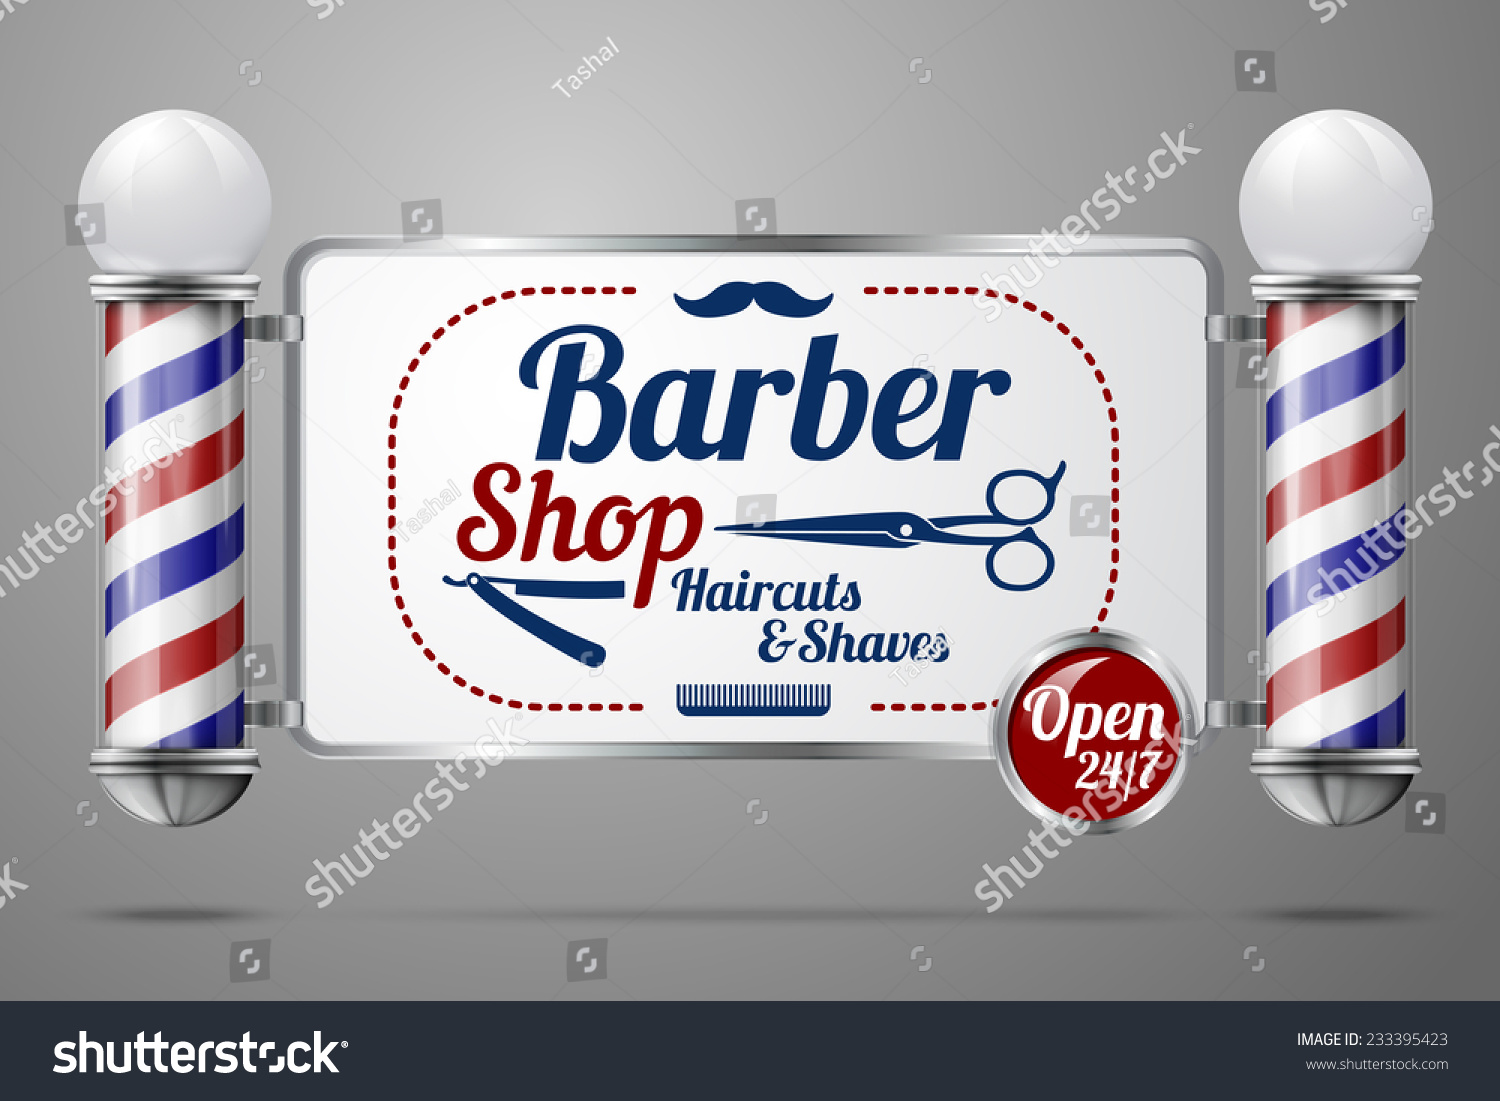 Antique barber shop signs - Realistic Vector Two Old Fashioned Vintage Silver And Glass Barber Shop Poles Holding Barber Sign